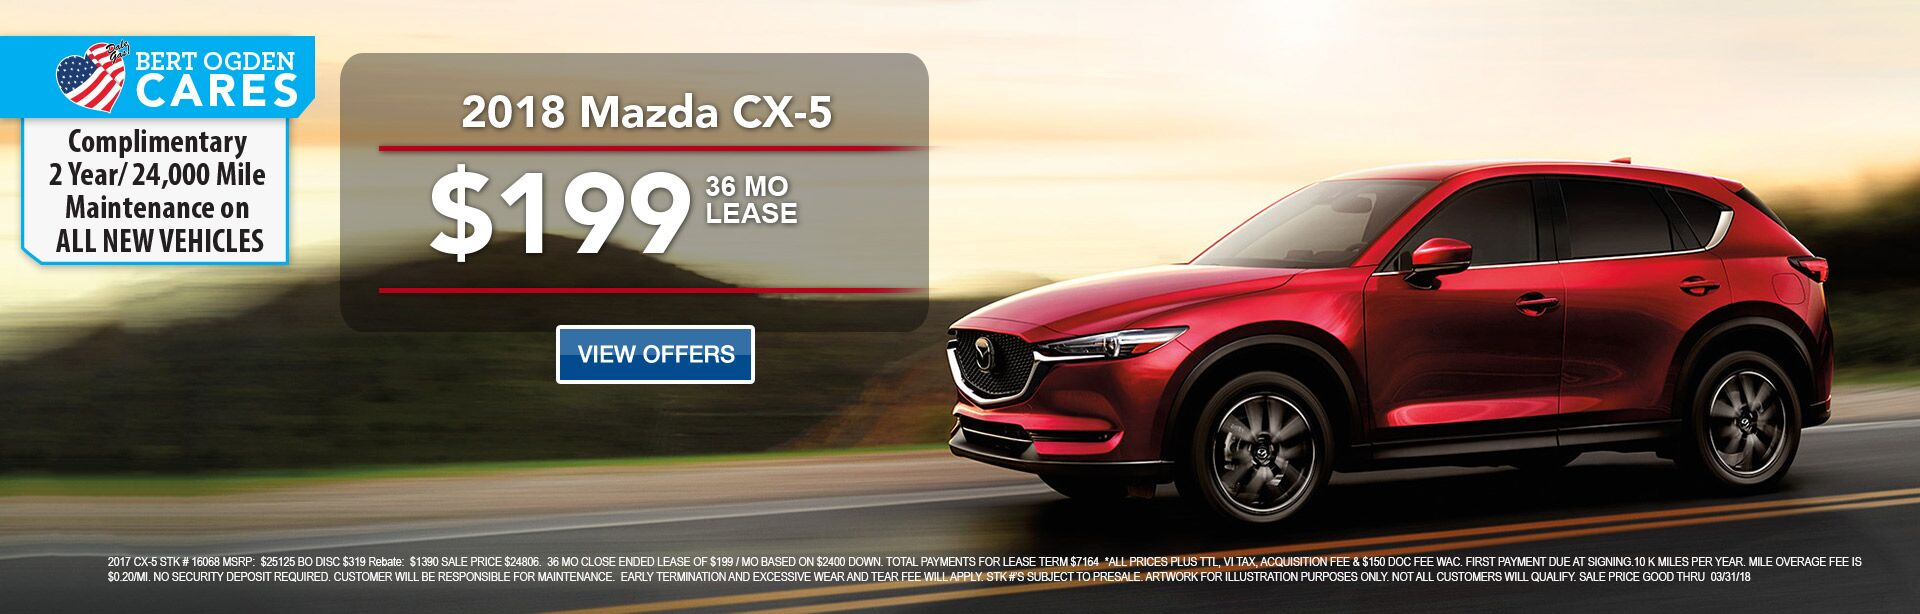 Welcome To Bert Ogden Mazda Mission New And Used Mazda For Sale - Mazda dealers texas